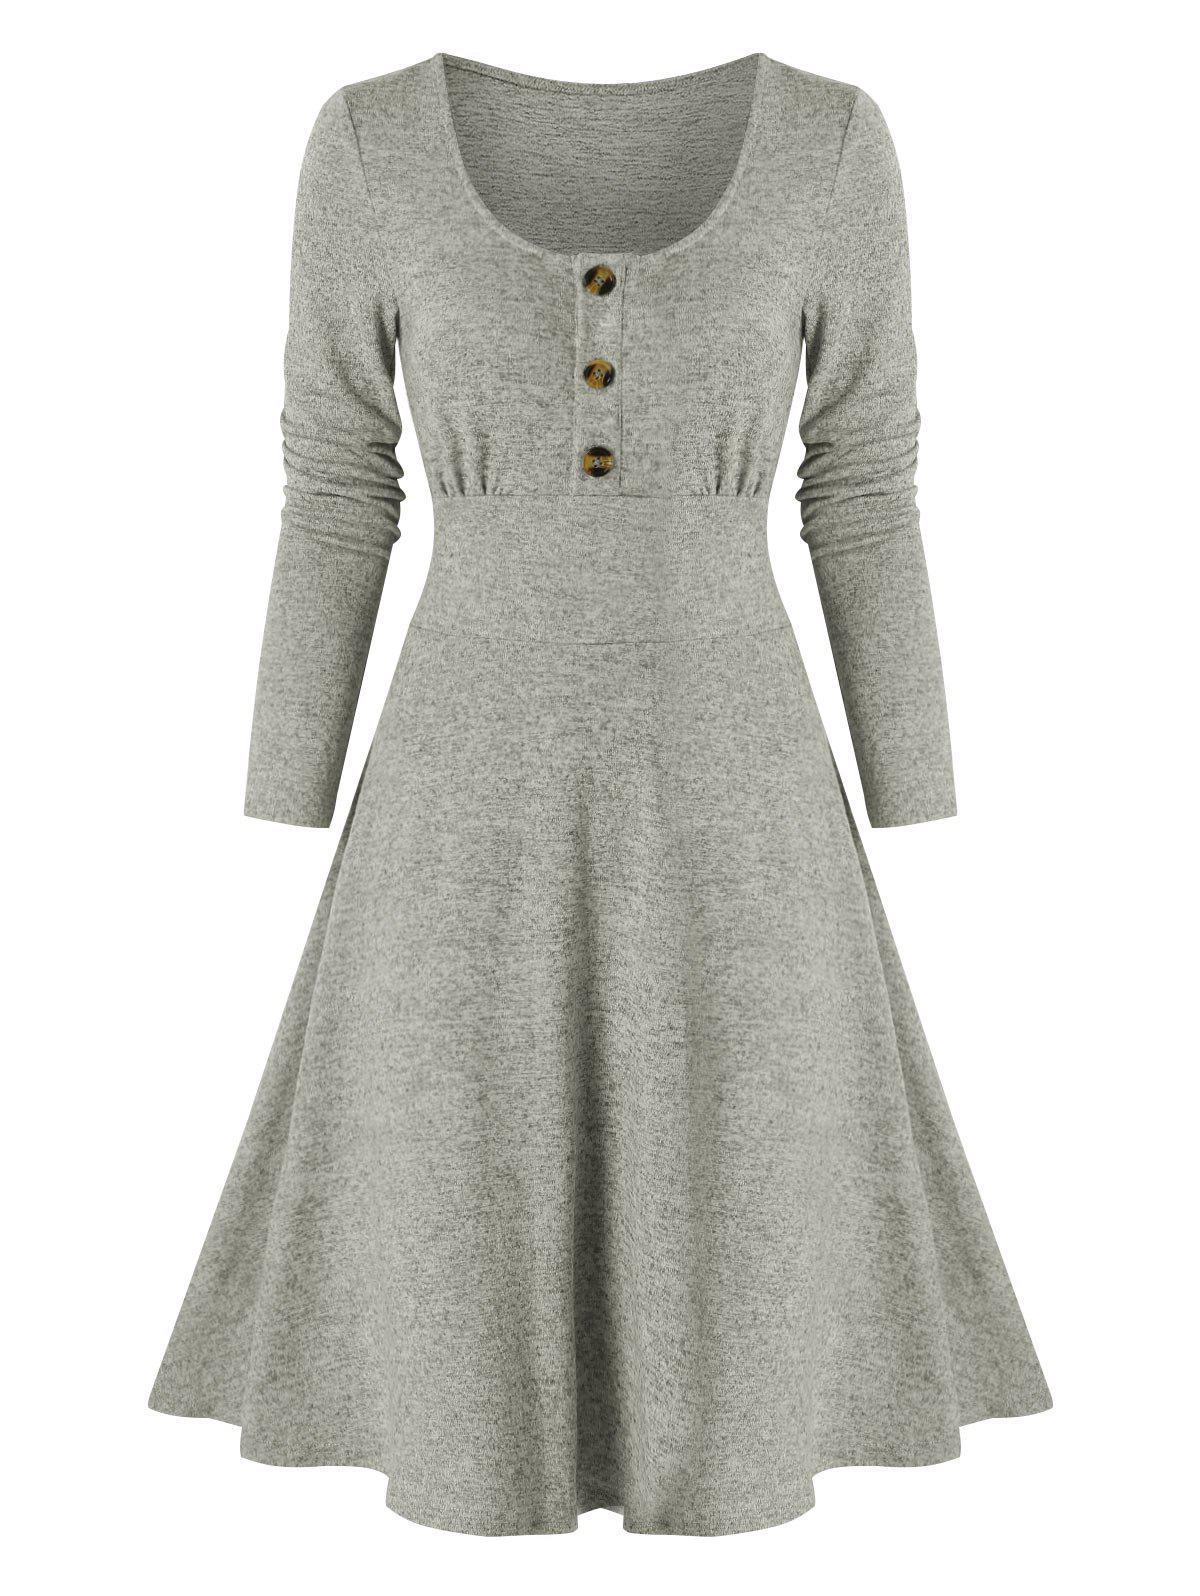 Mock Button Heathered Casual Dress - GRAY XL